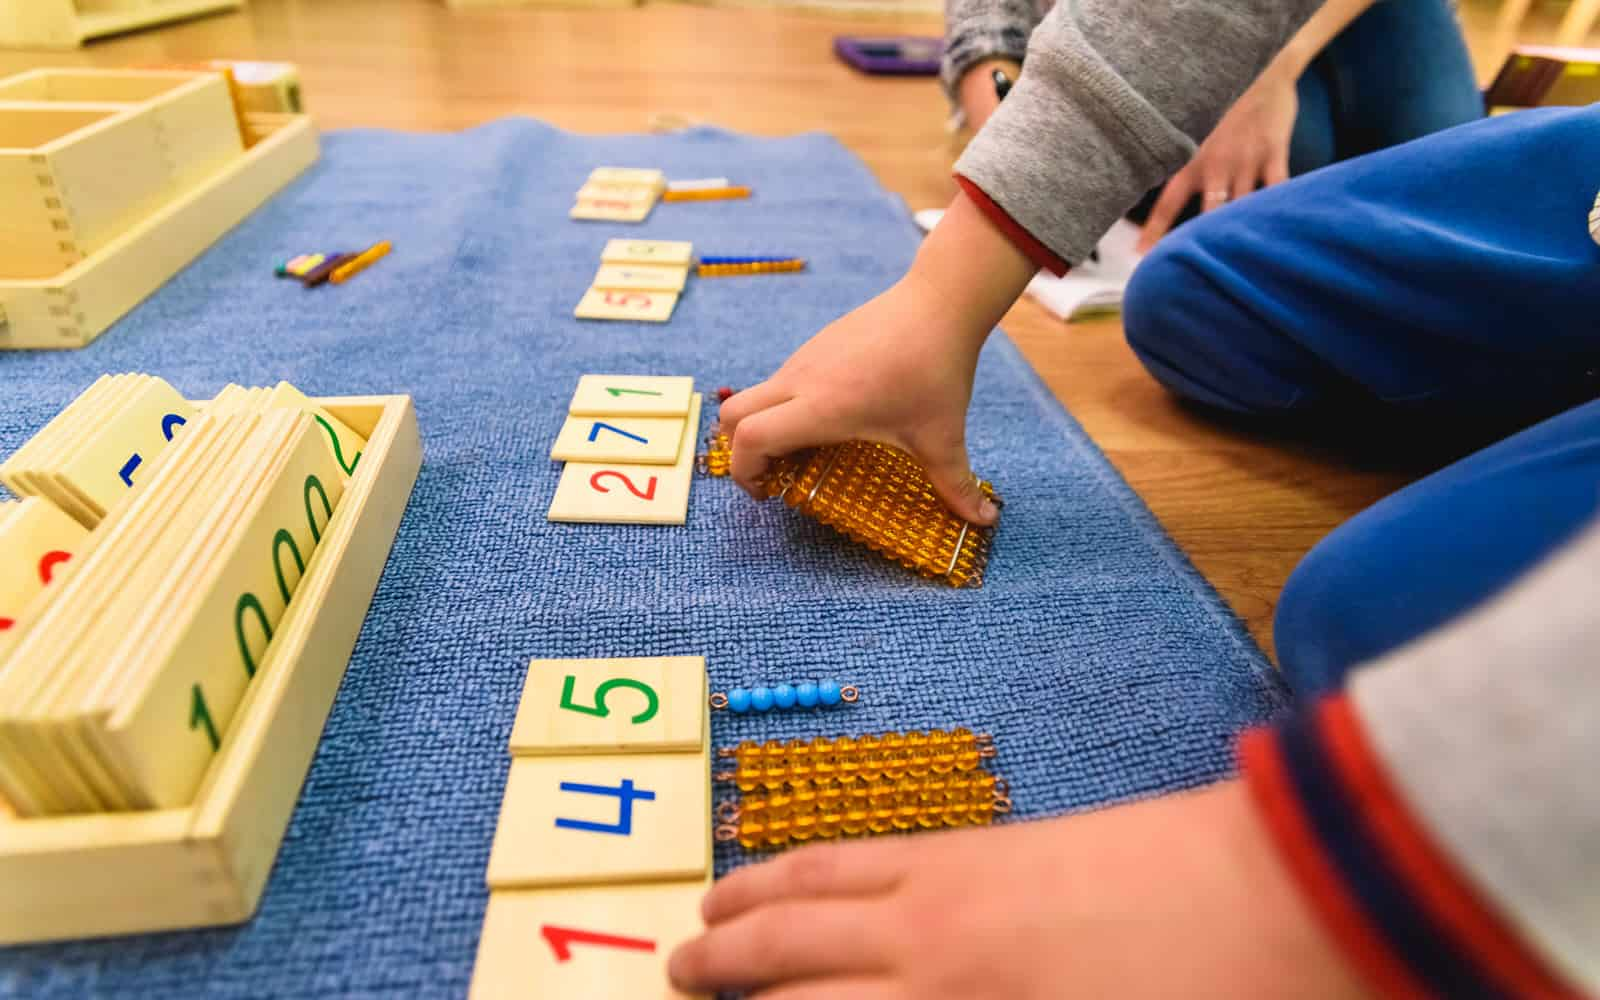 Why Montessori in the time of COVID-19?